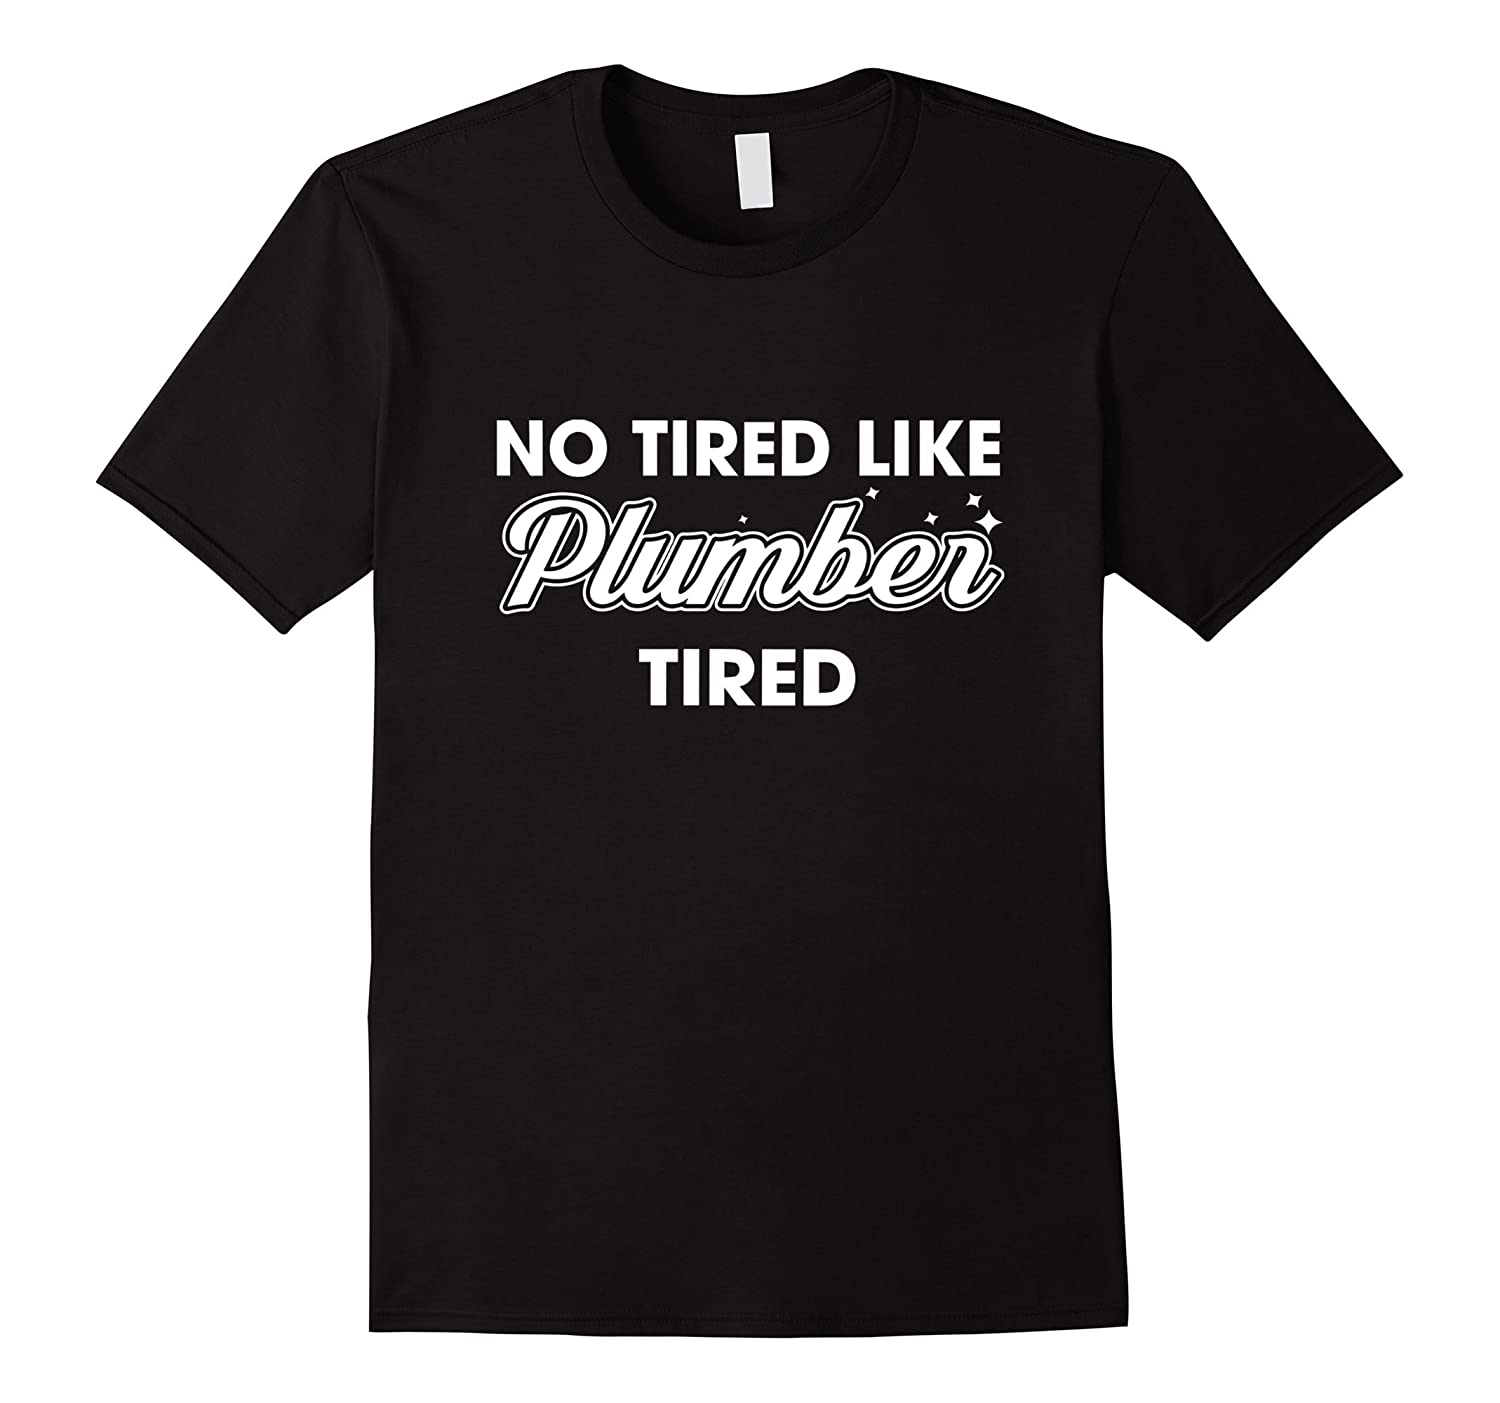 No tired like Plumber tired T-shirt-TD